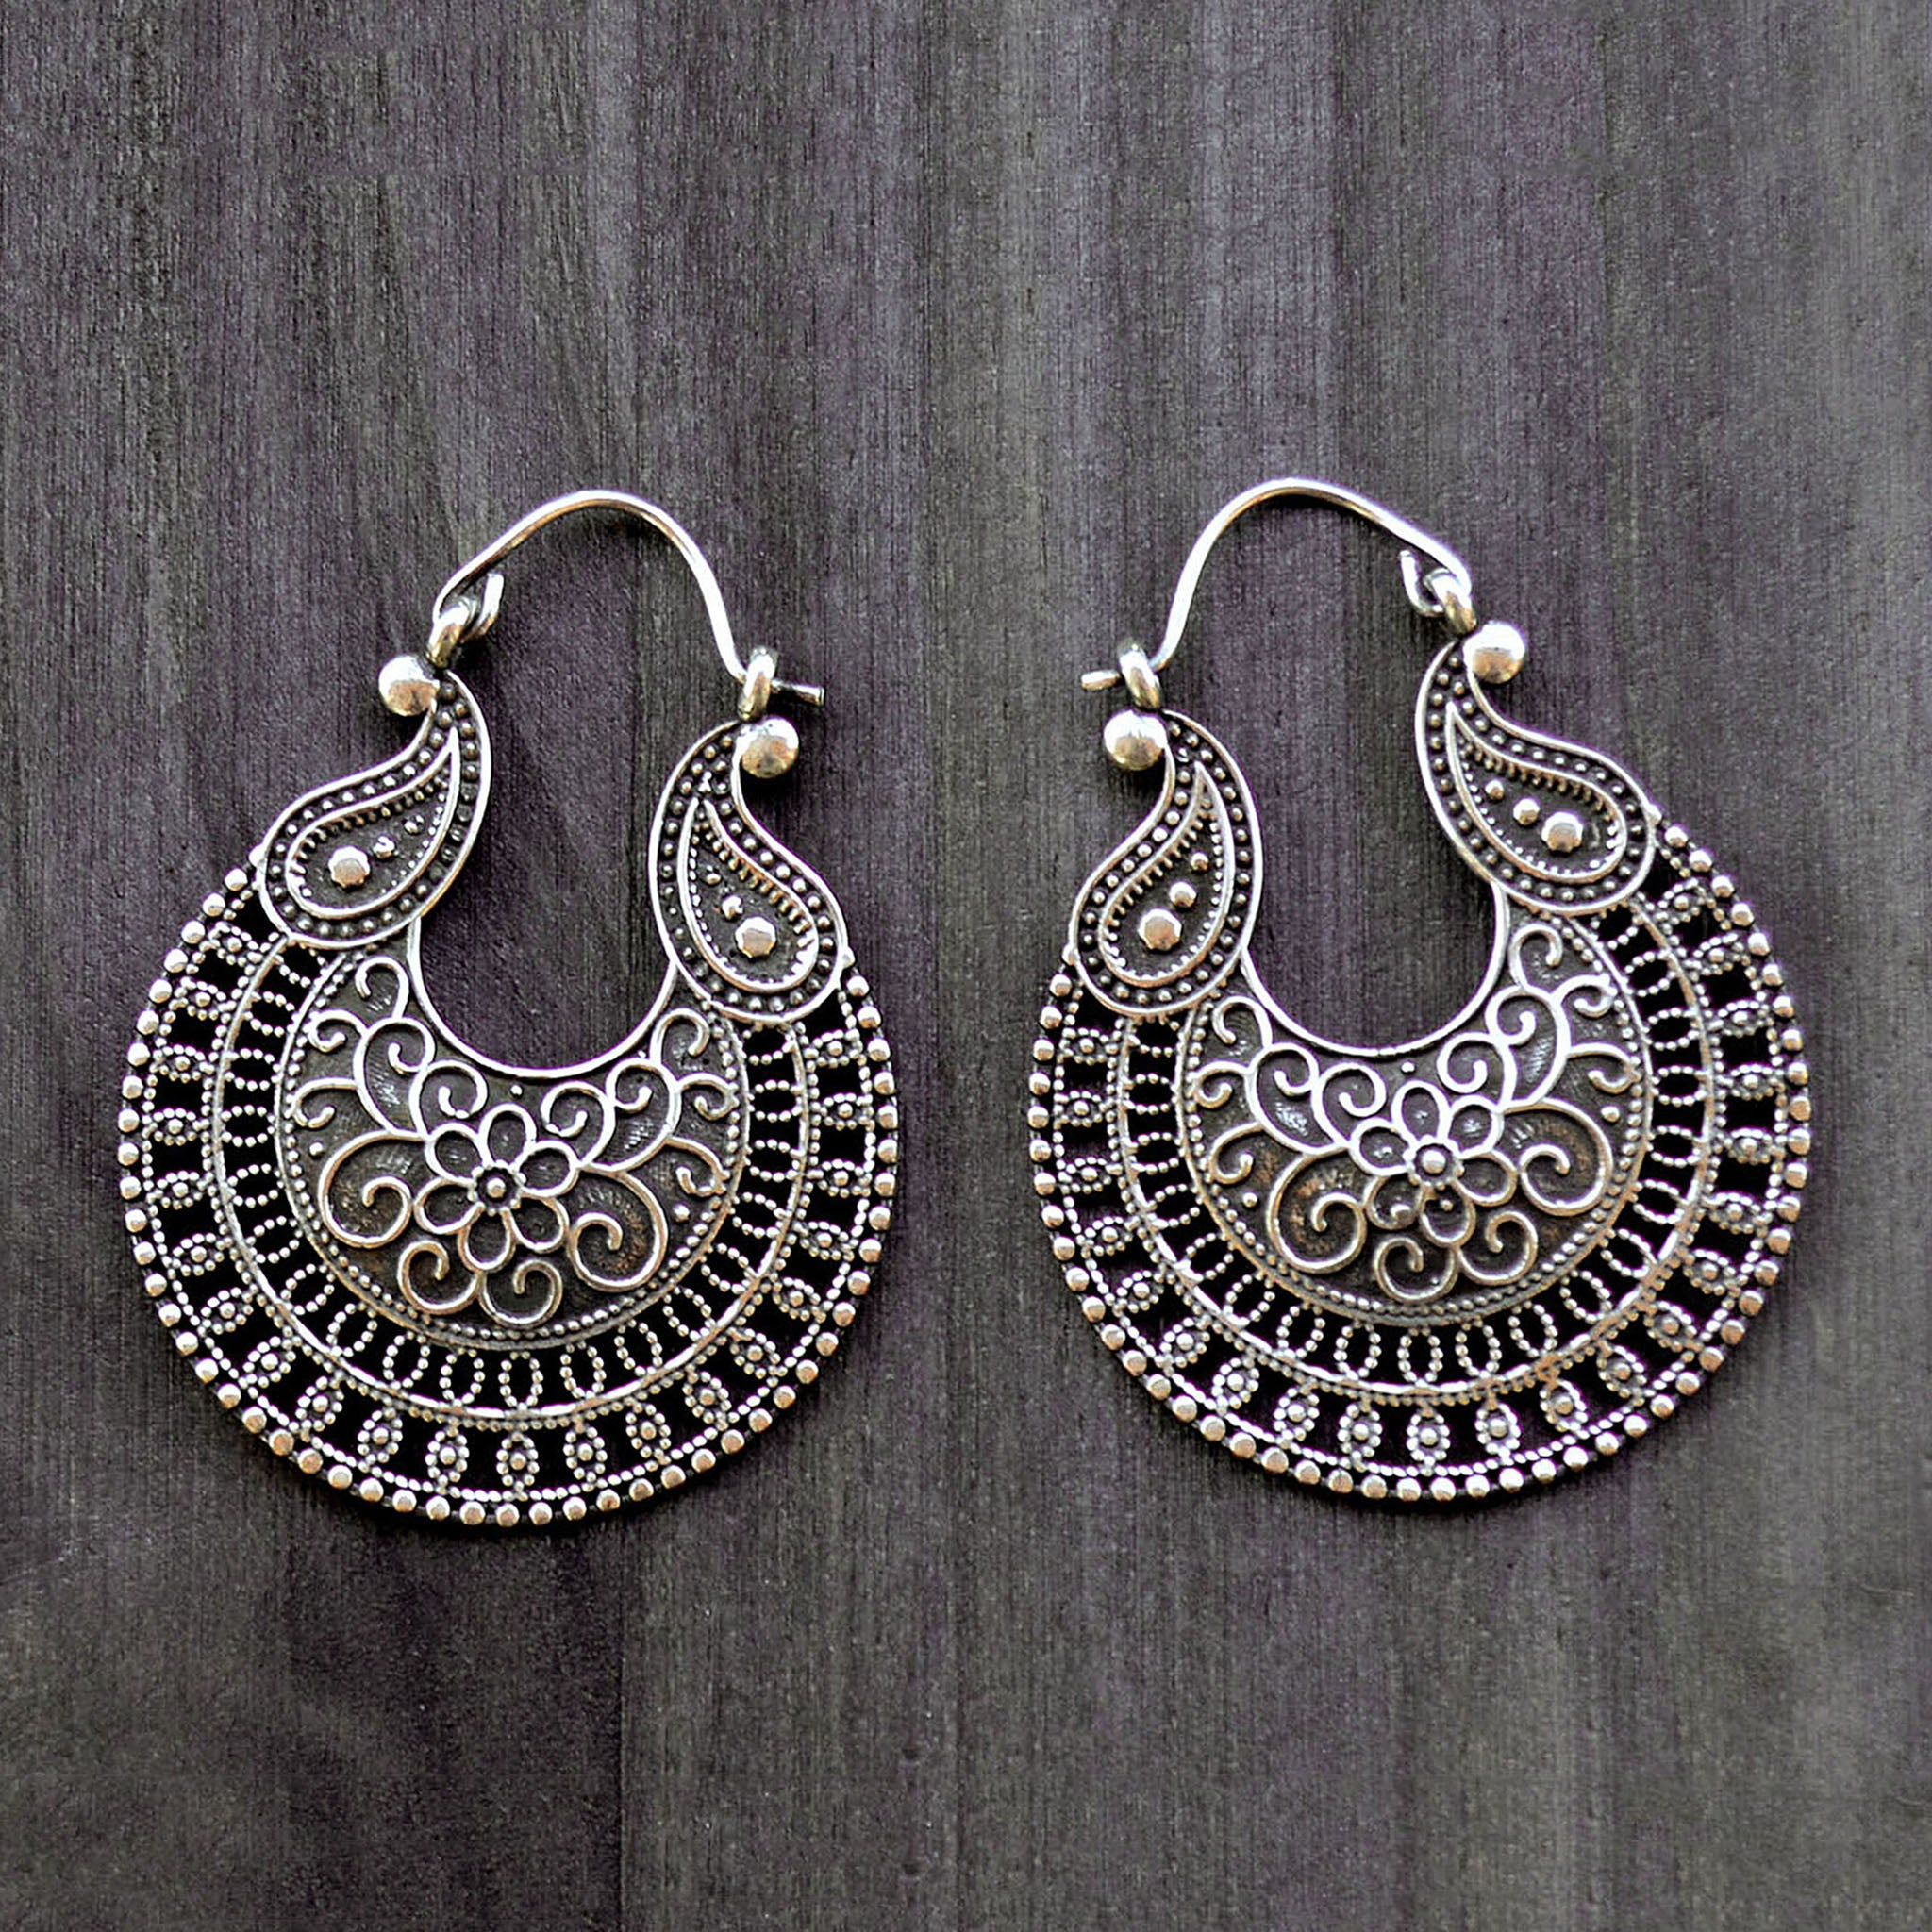 Gypsy ornate earrings